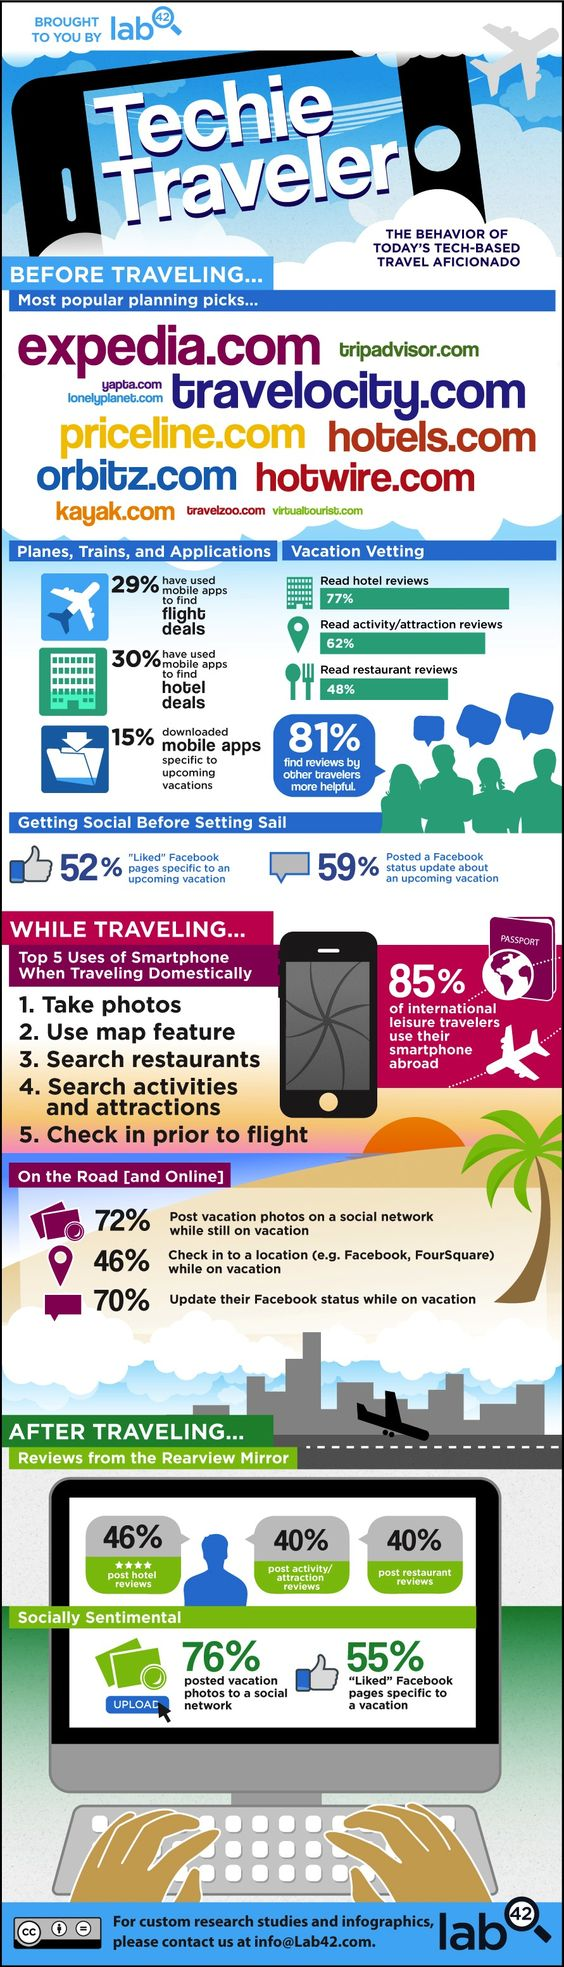 [how tech is changing travel]